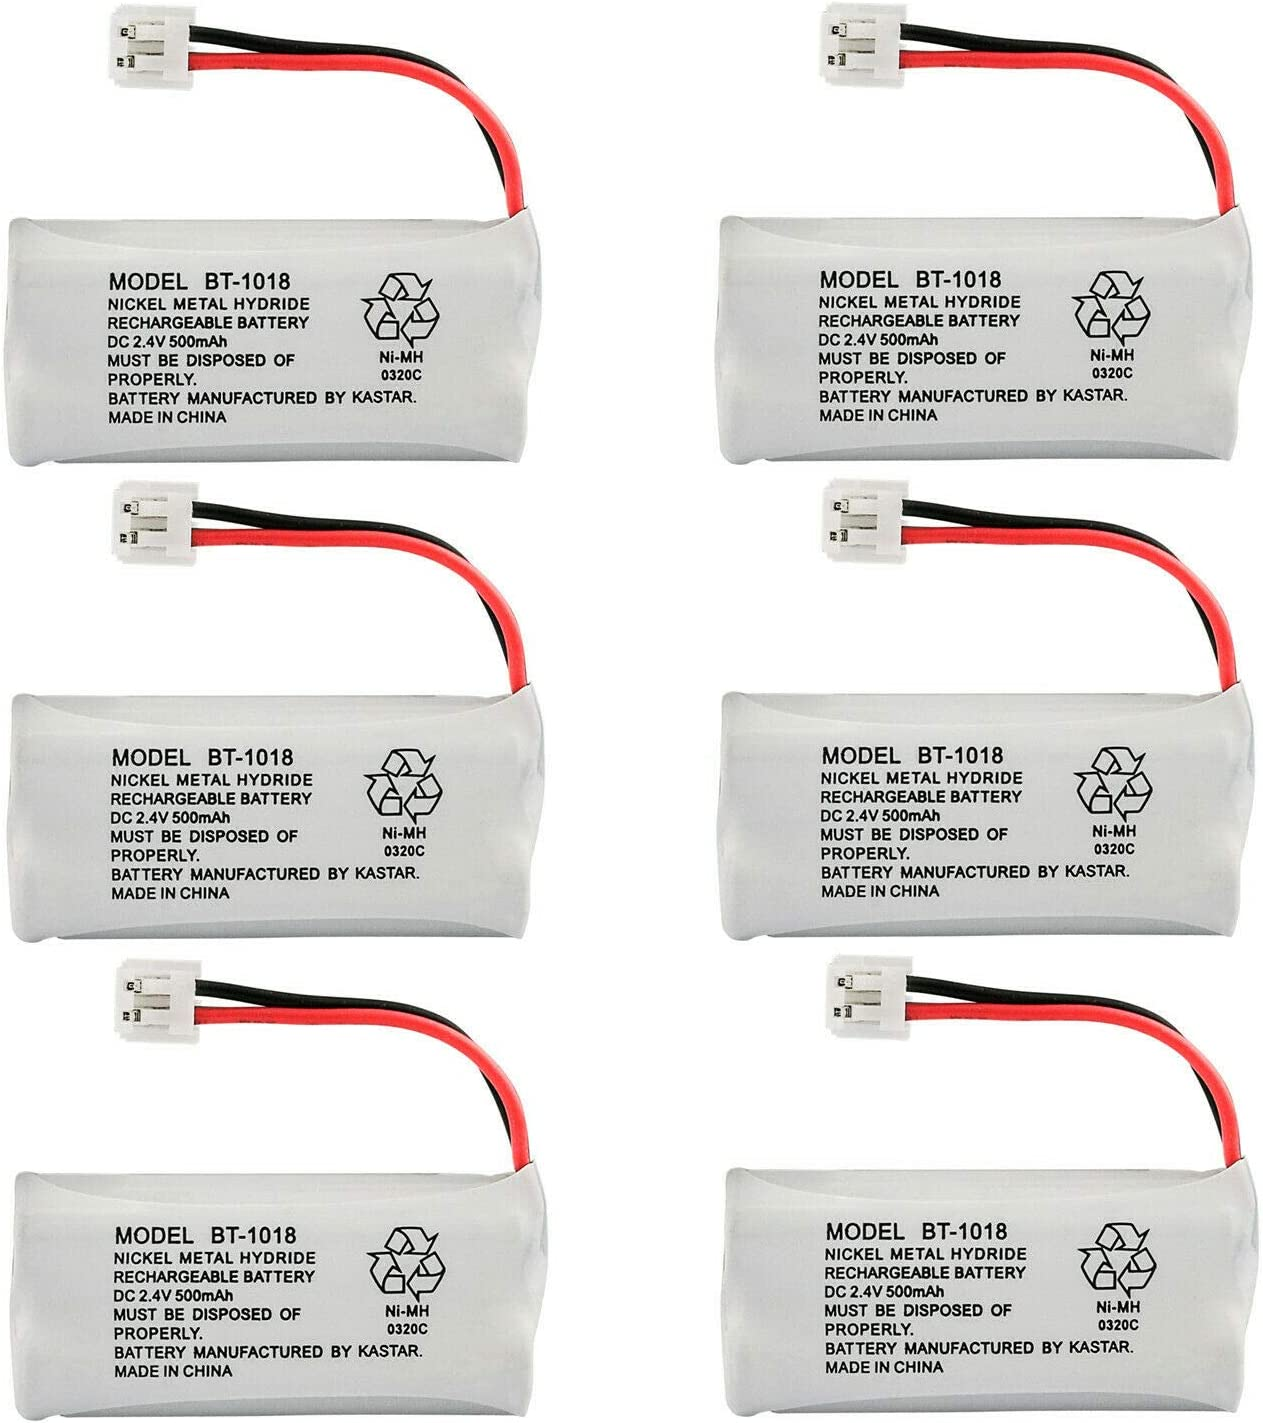 Kastar 6-Pack Battery Replacement for GE 28127FE2 28203 2-8203 28213 2-8213 28213EE1 28213EE2 28223 2-8223 28223EE2 28801 2-8801 28802 2-8802 28802FE1 28811 2-8811 28811FE2 28821 2-8821 28821FE2